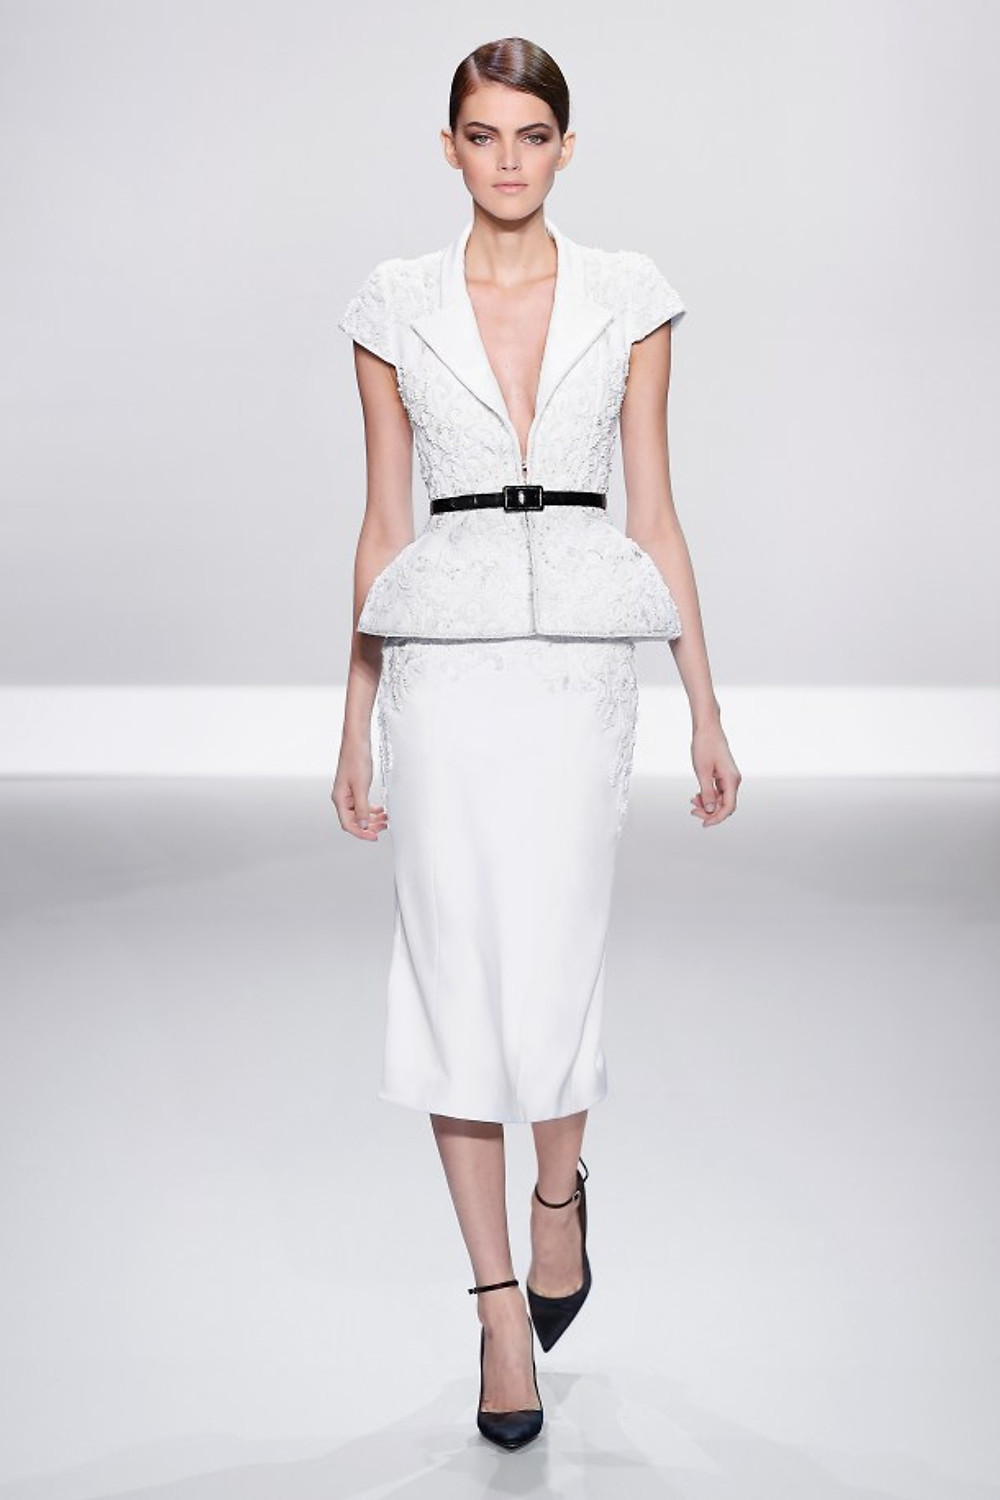 RALPH & RUSSO COUTURE  Spring/Summer 2014 collection